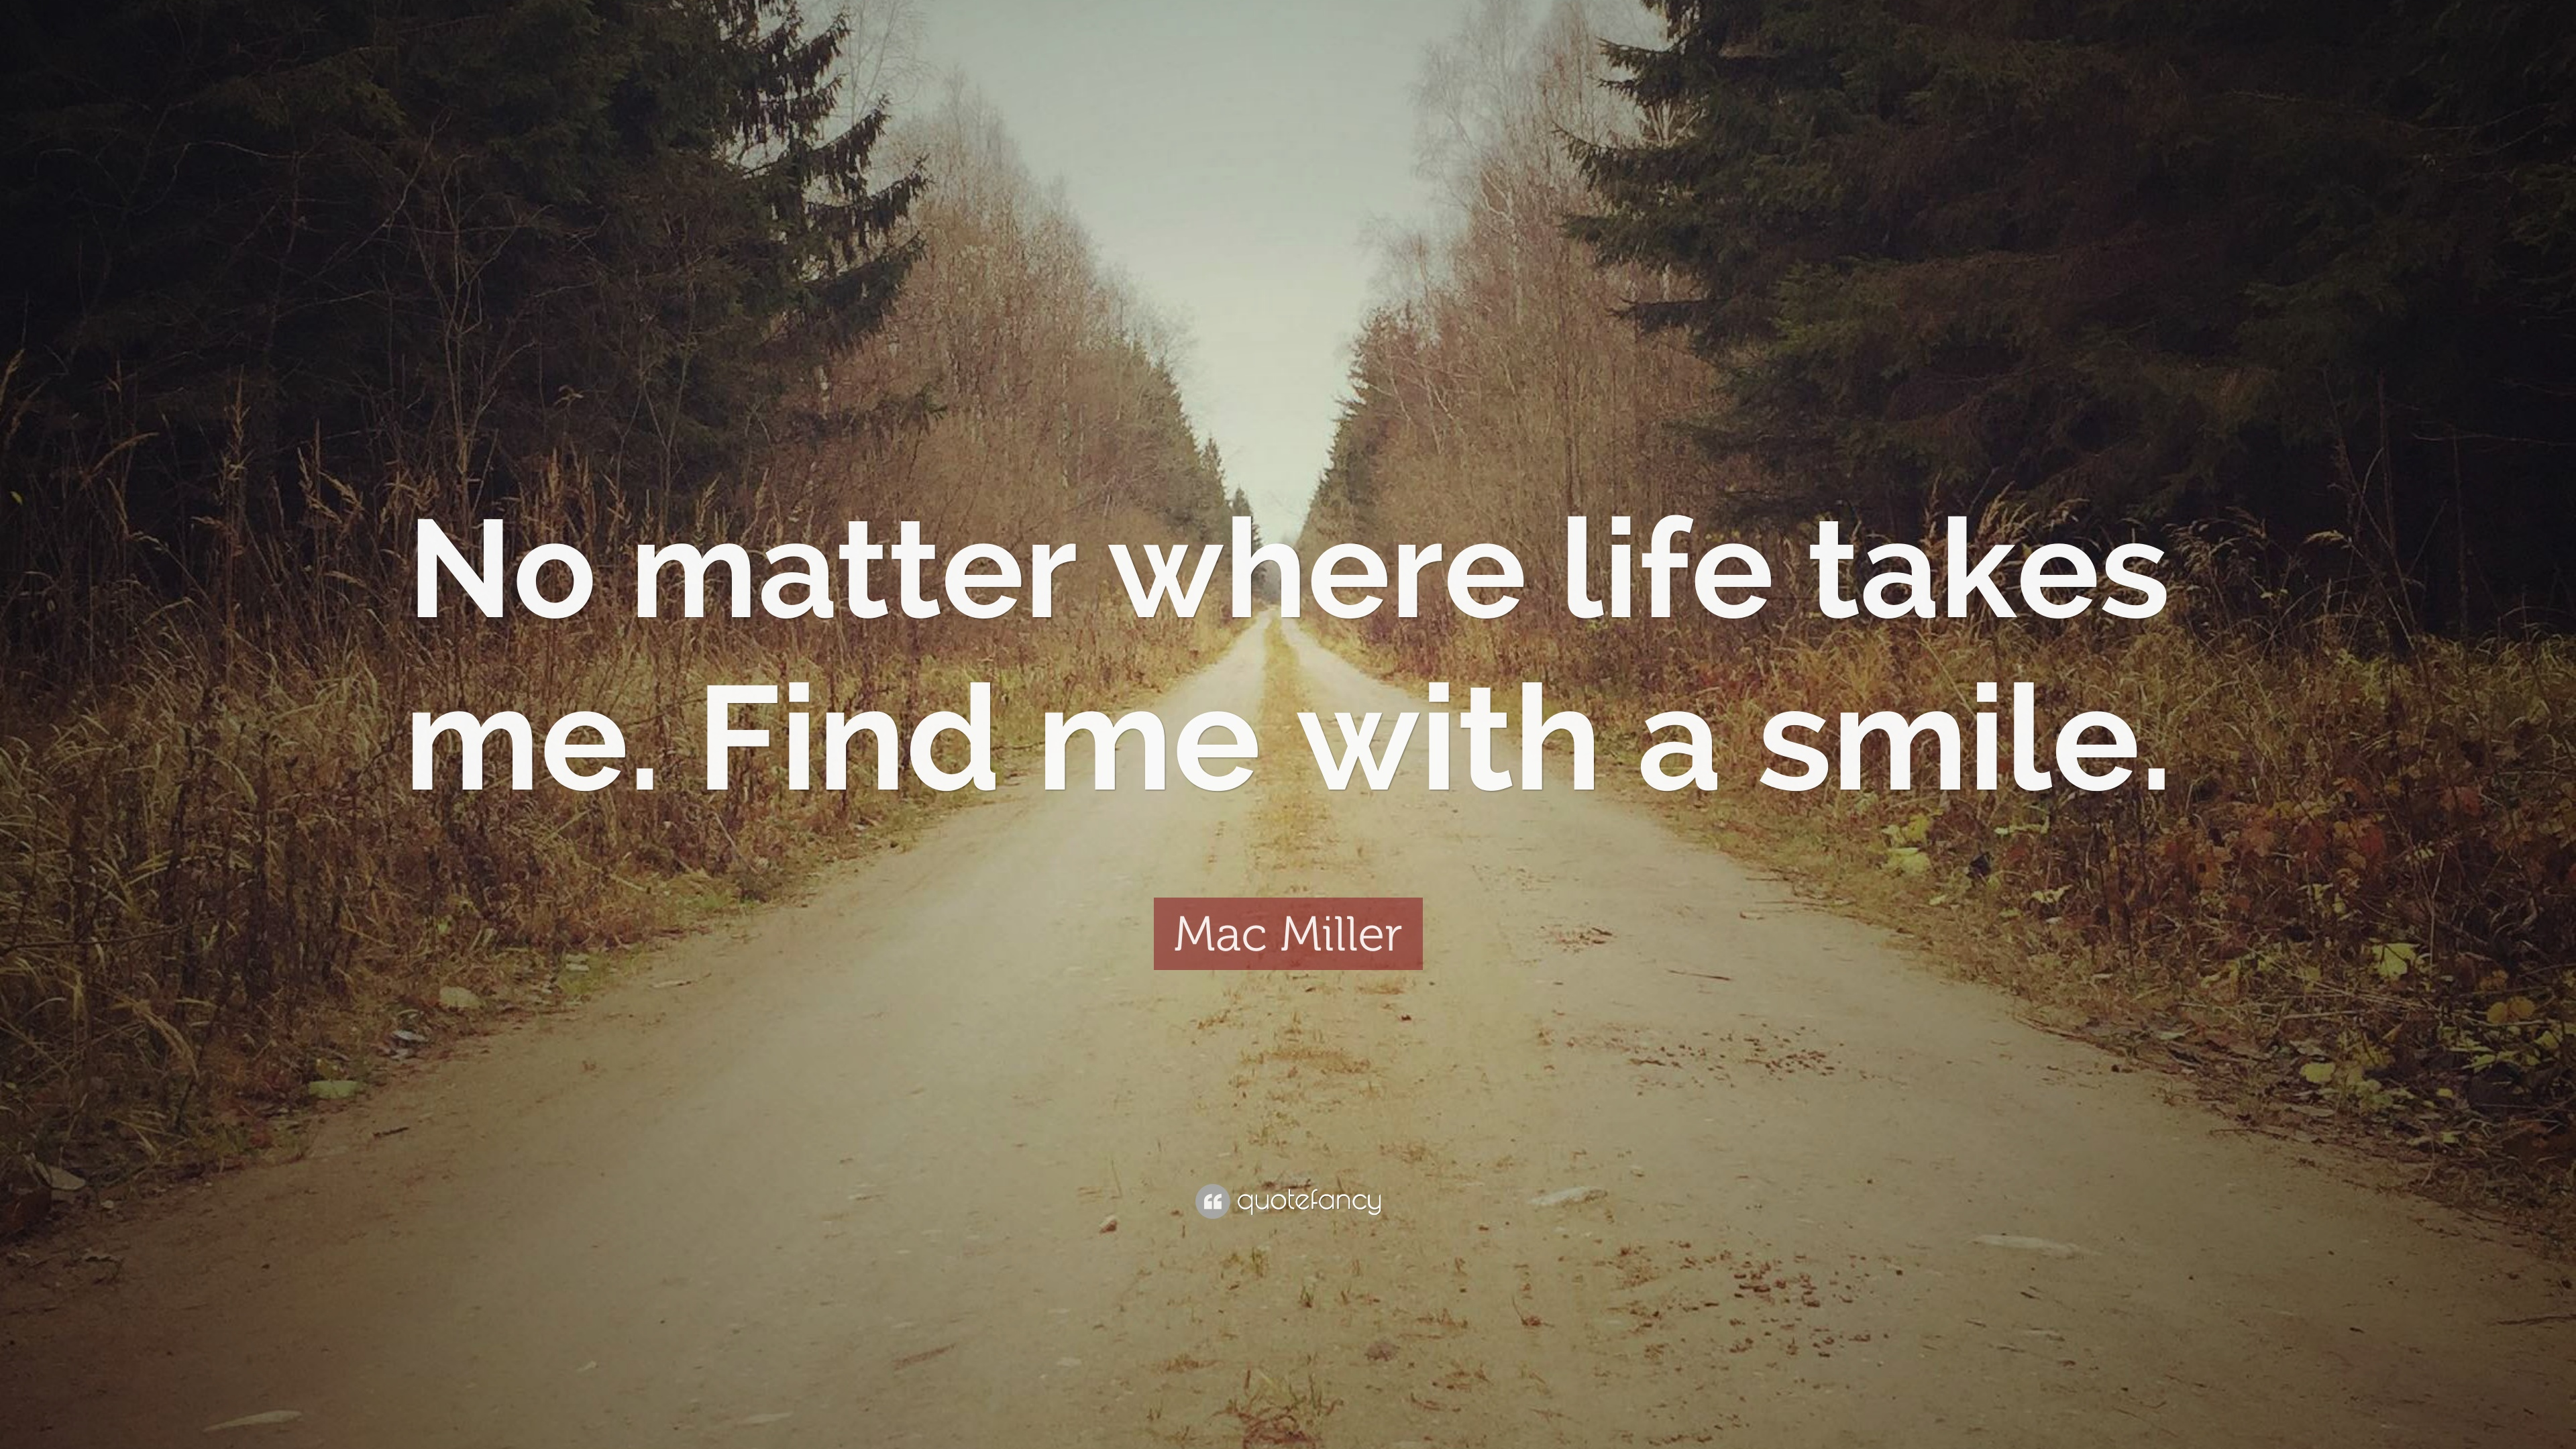 Must see Wallpaper Mac Quotes - 1024227-Mac-Miller-Quote-No-matter-where-life-takes-me-Find-me-with-a  Image_625220.jpg